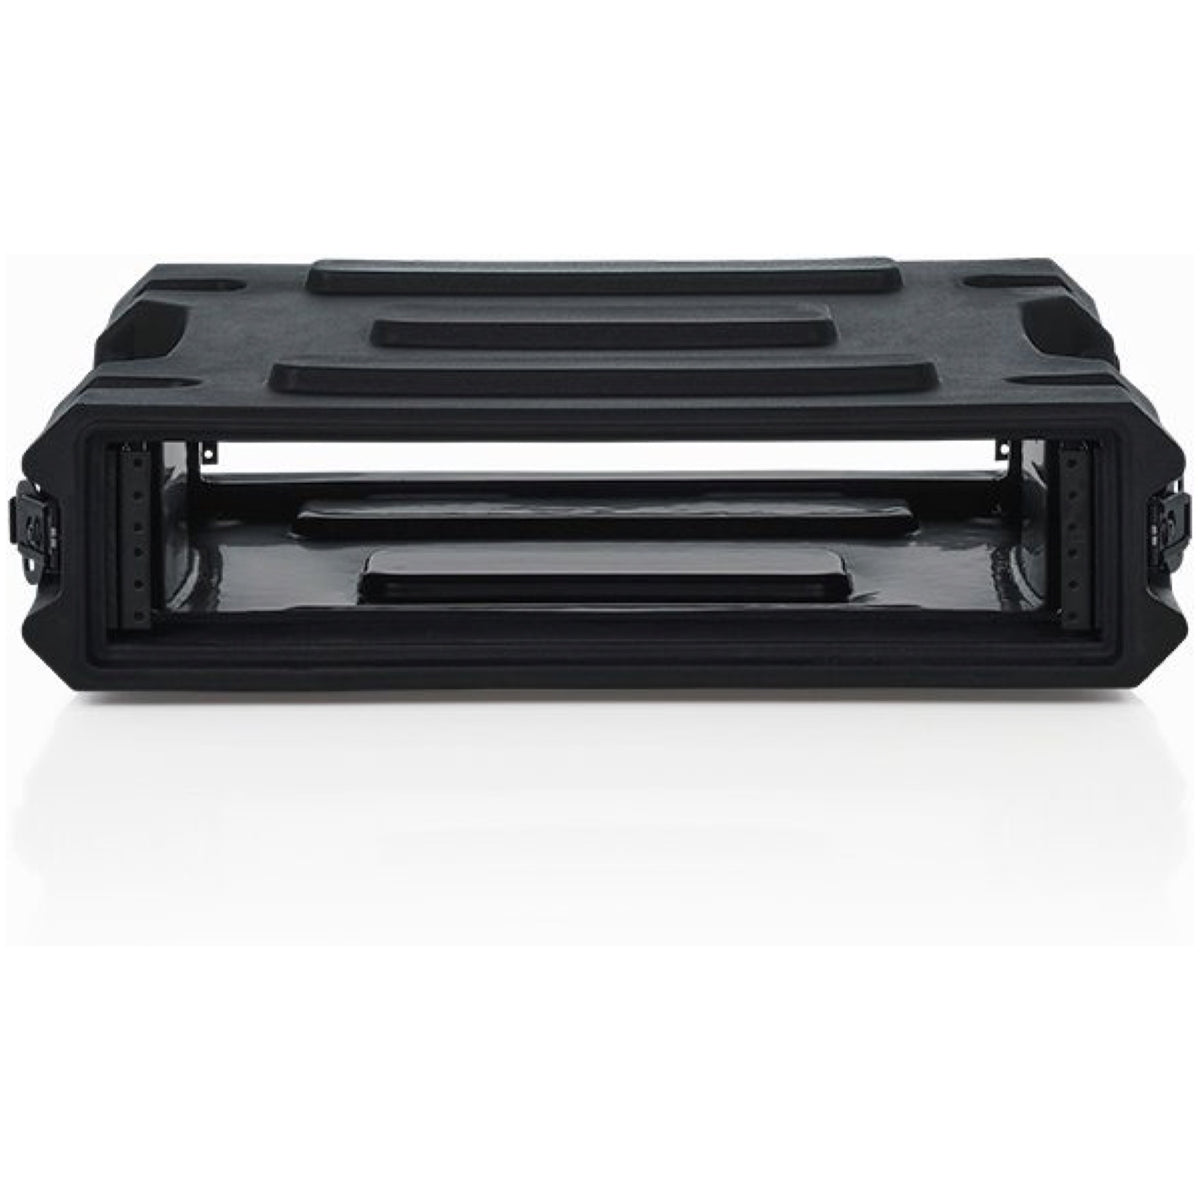 Gator Pro Series Deep Molded Audio Rack, 2-Space, 19 Inch, G-PRO-2U-19